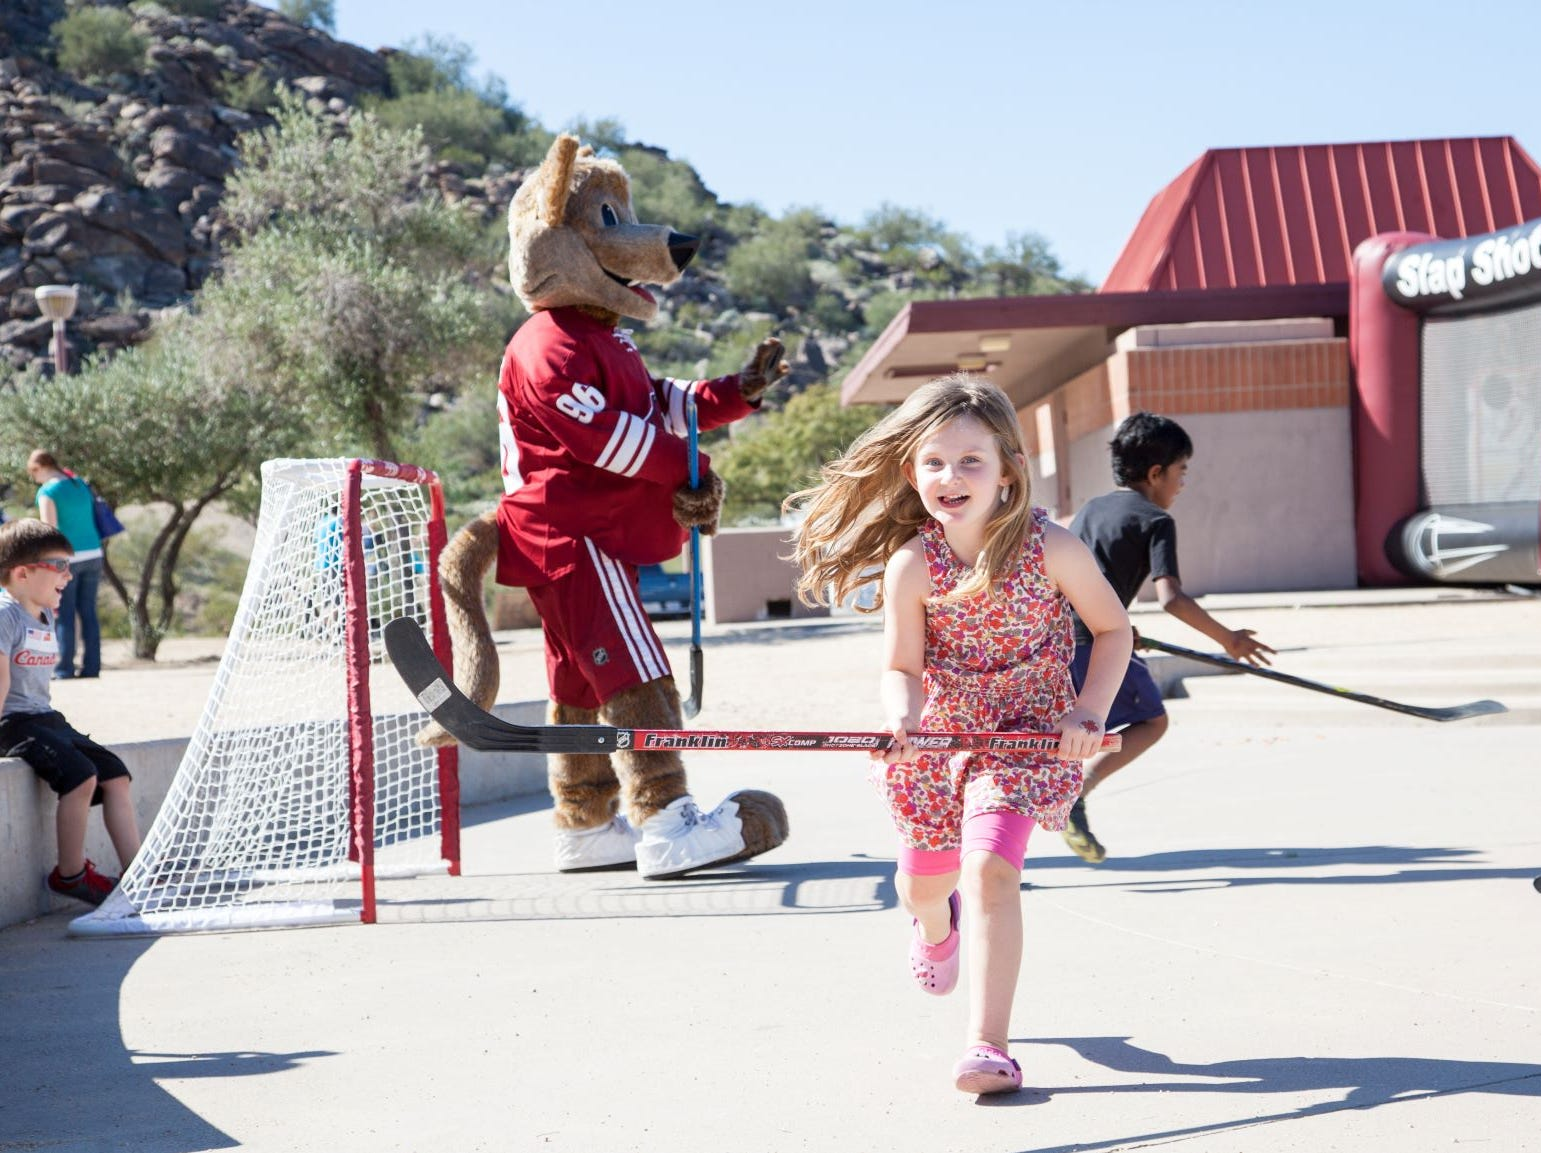 The Great Canadian Picnic will have Canadian-themed activities such as ball hockey.